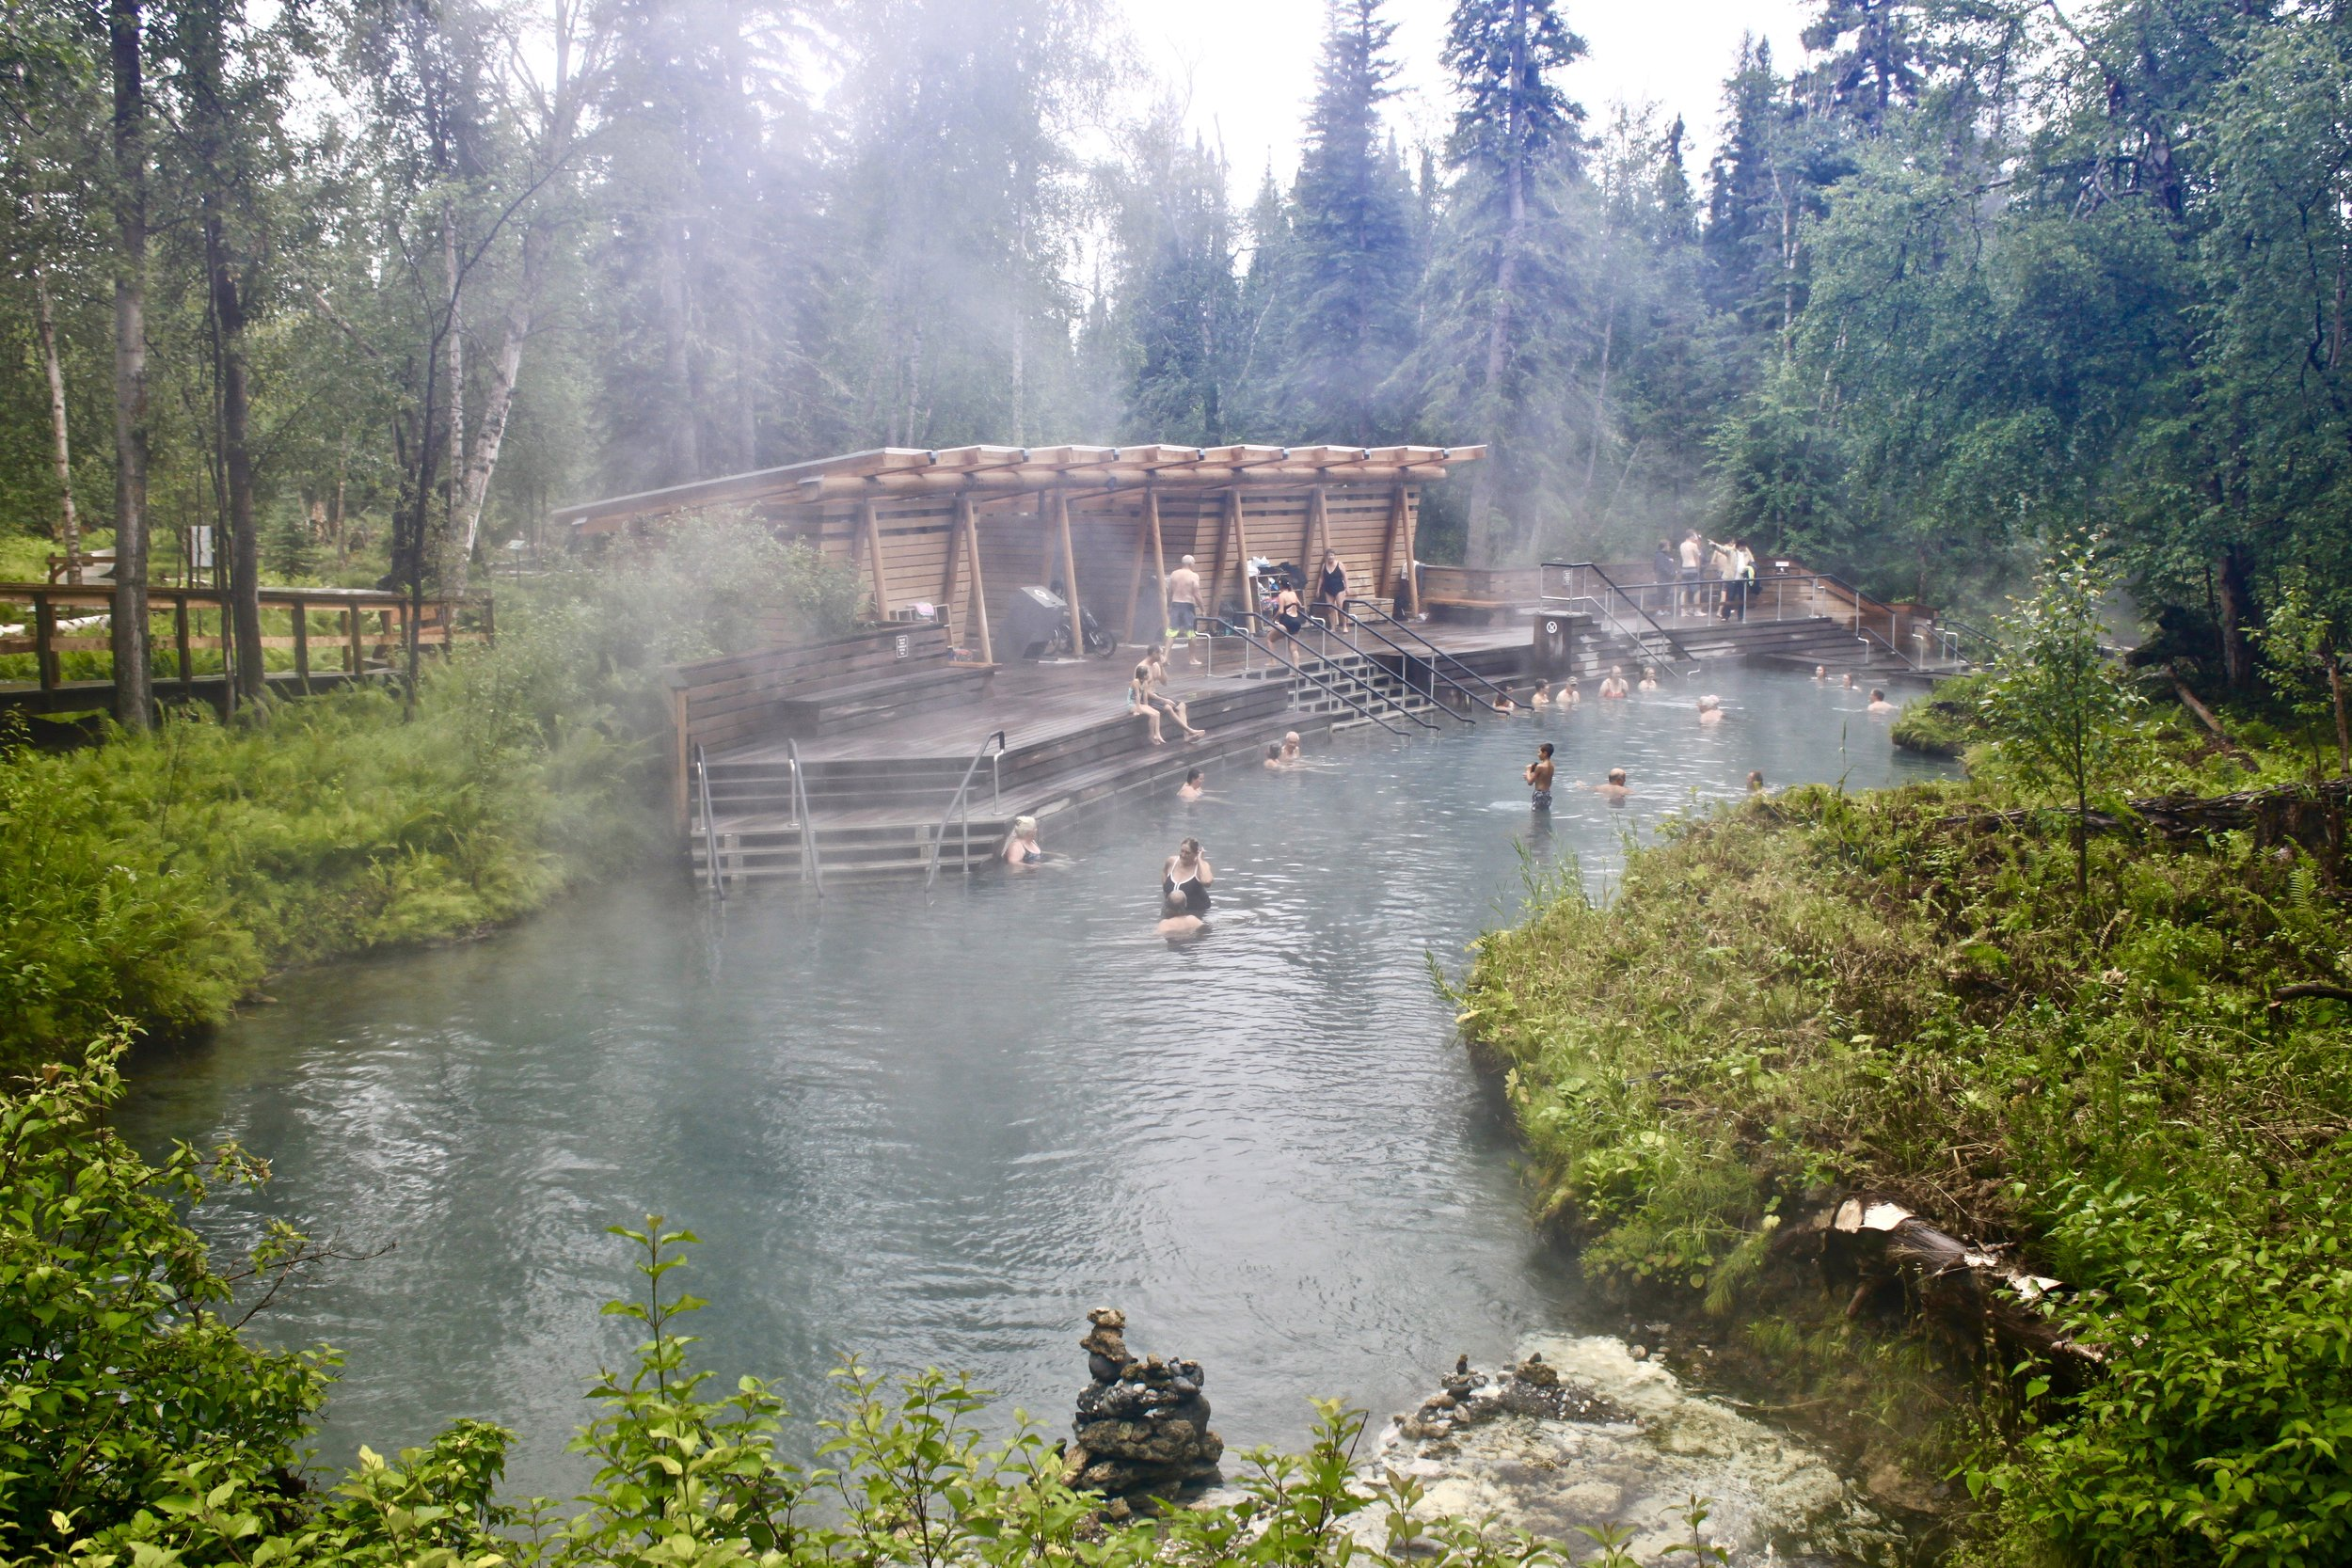 Liard River Hot Springs - I soaked in these waters all afternoon.